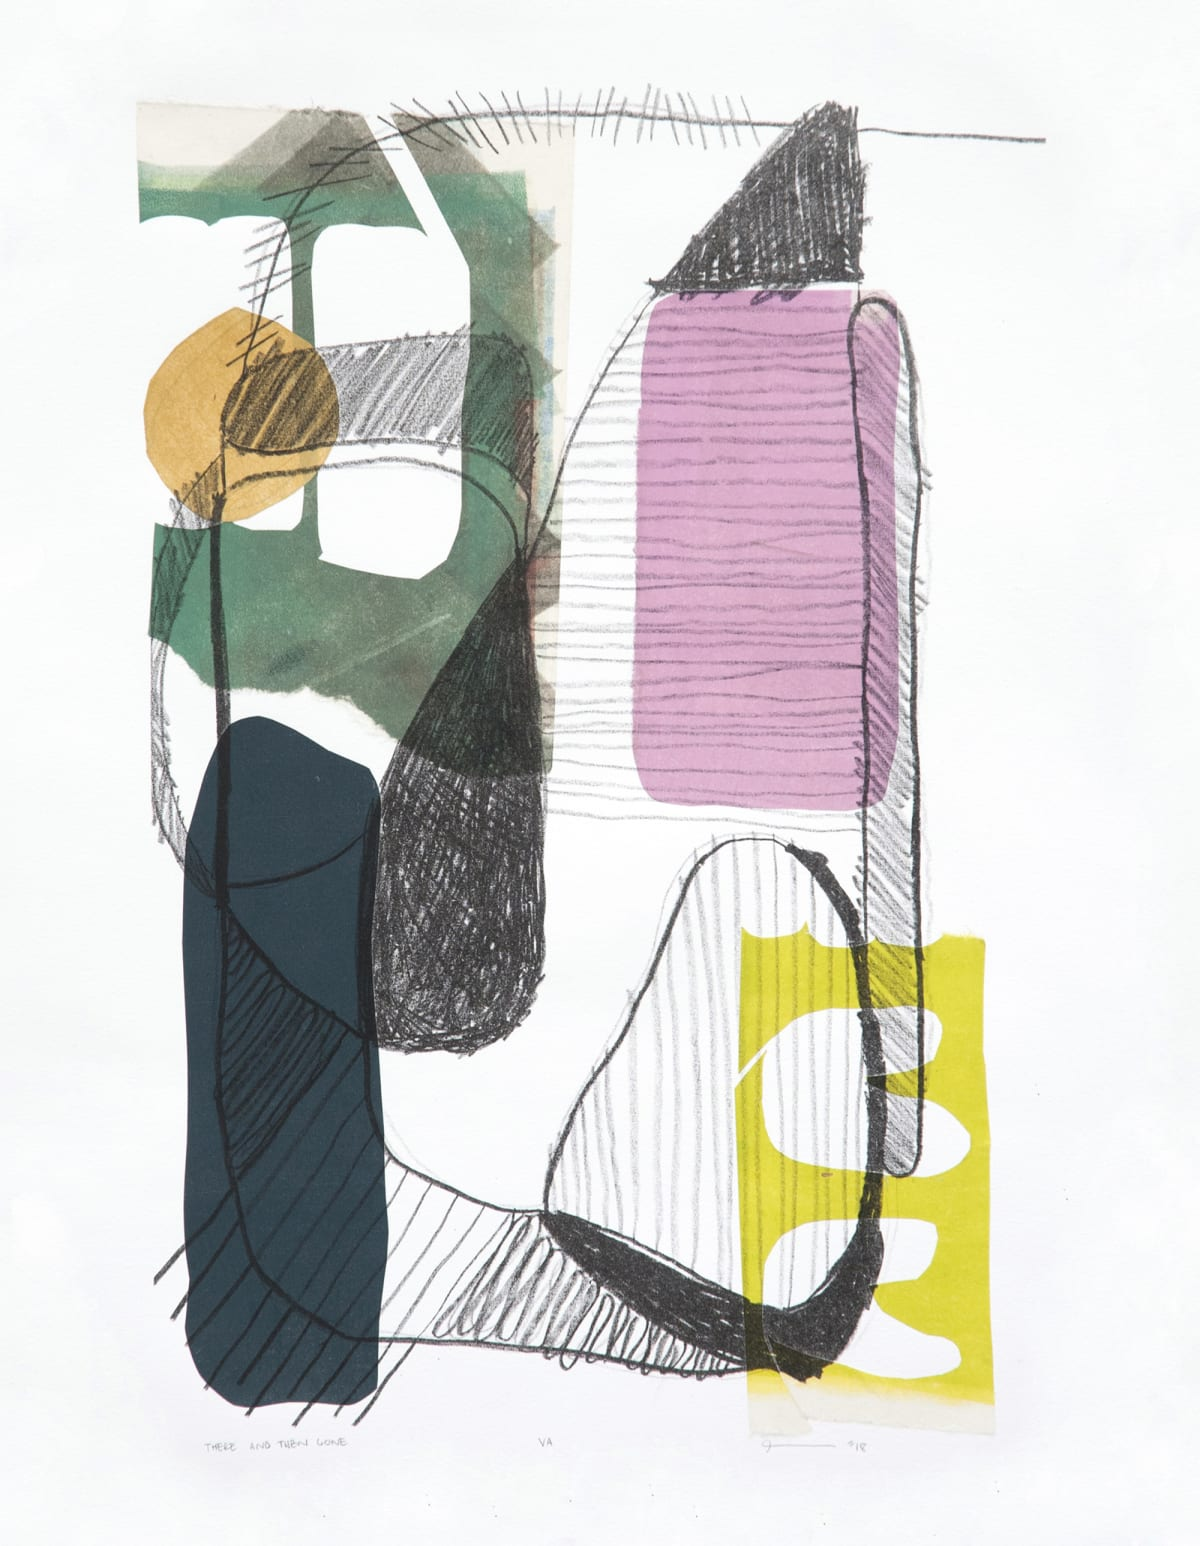 Julia Sorboro There and Then Gone (Varied Edition), 2018 1 color lithograph with chine collé on Rives BFK 50.8 x 40.6 cm 20 x 16 in